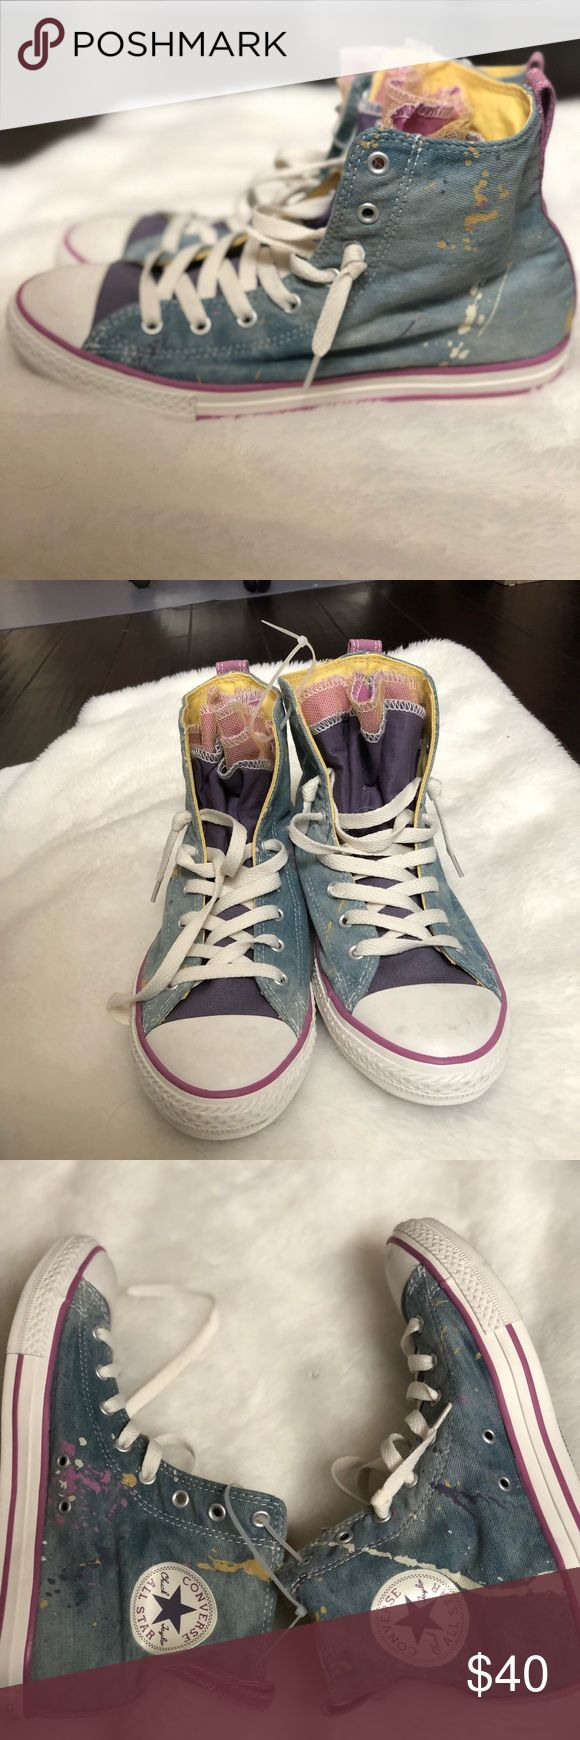 Converse denim paint splatter high top sneakers New without the original box. Denim high top with paint splatter design. Denim is meant to have a light worn in look. Tulle design tongue. Size 38.5 Converse Shoes Sneakers